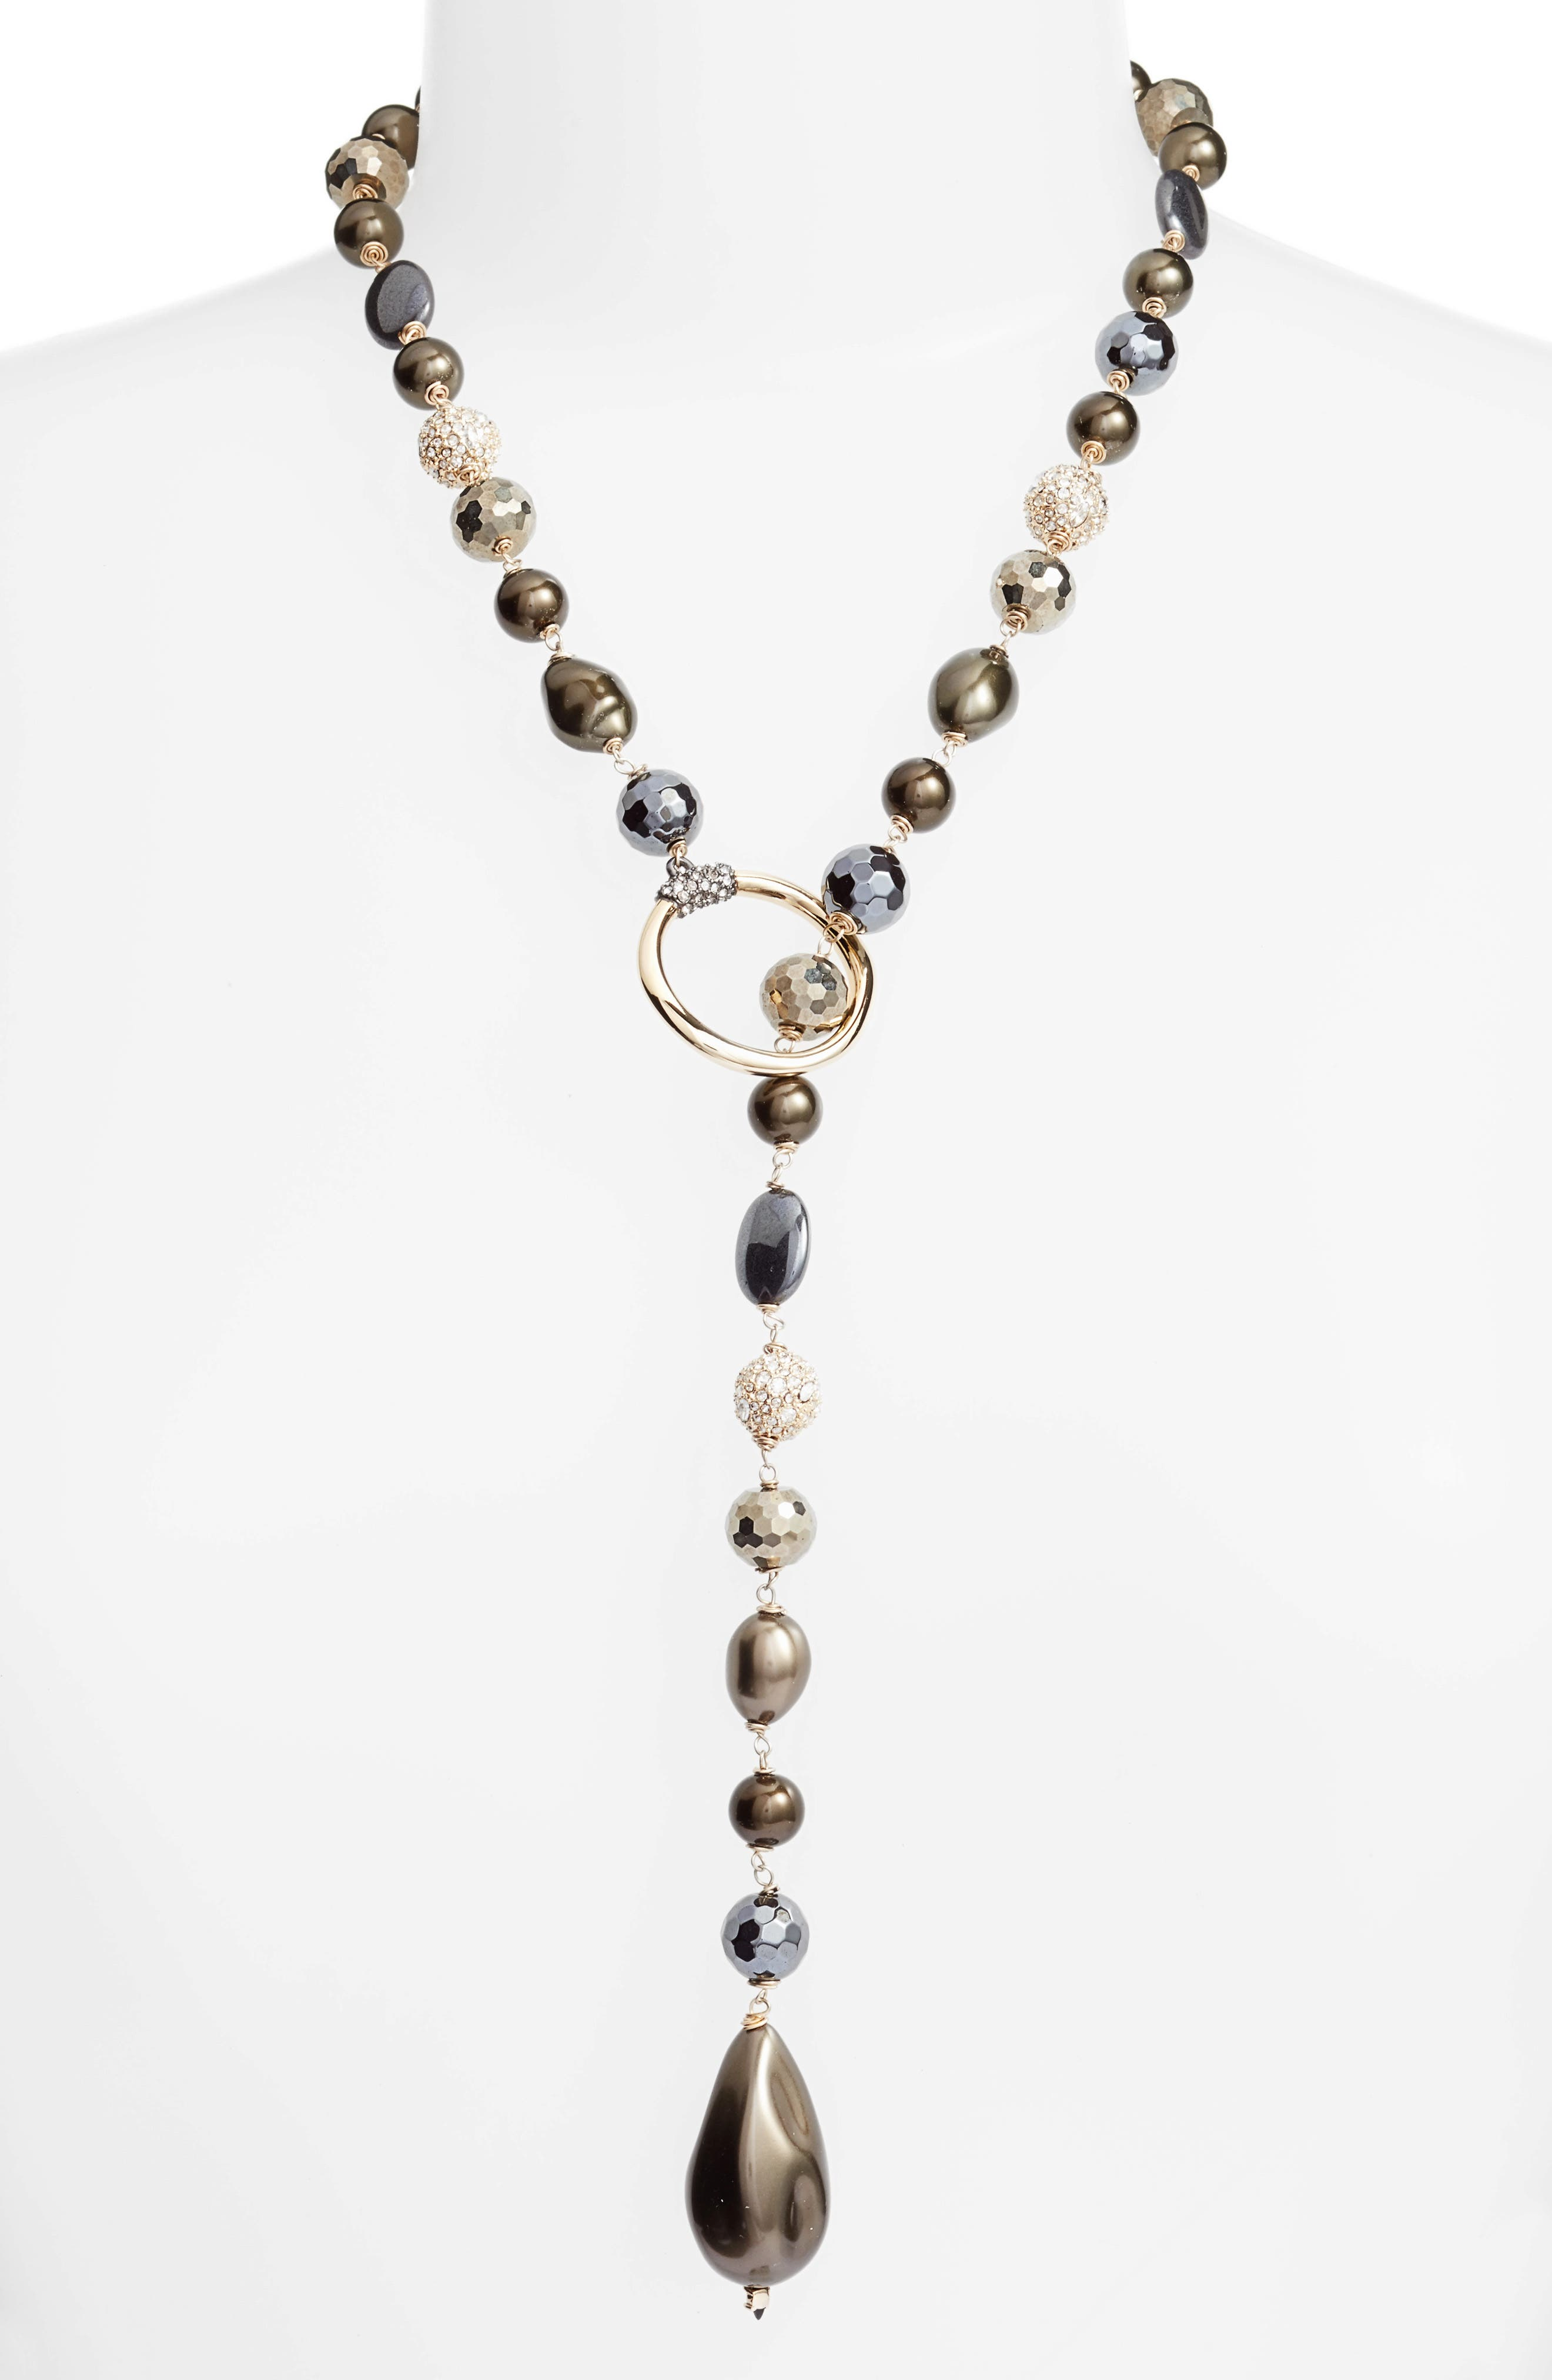 Alternate Image 1 Selected - Alexis Bittar Imitation Baroque Pearl & Crystal Lariat Necklace